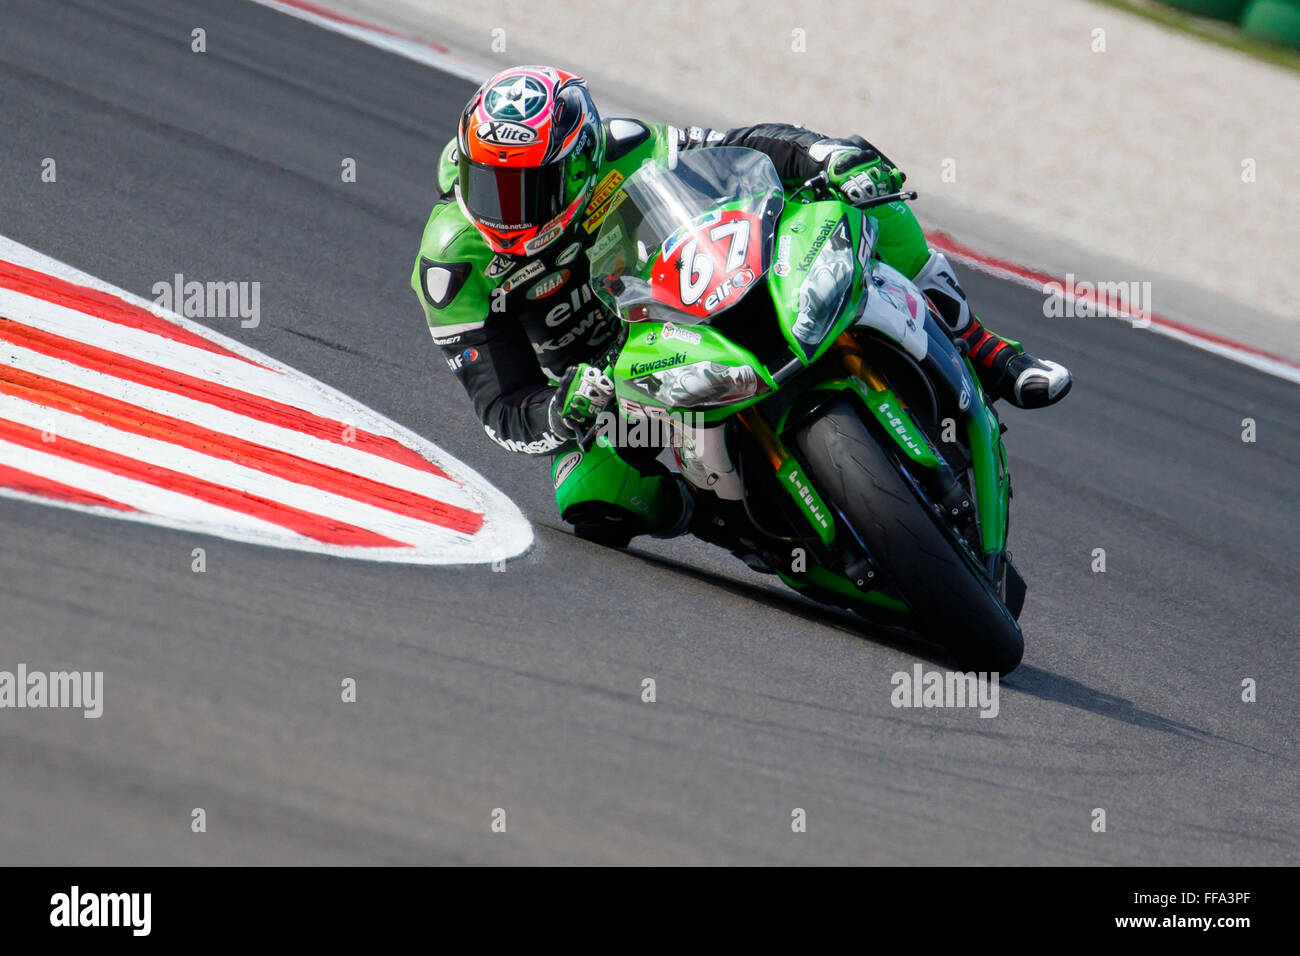 Misano Adriatico, Italy - June 20, 2015: Kawasaki ZX-10R of Team Pedercini, driven by STARING Bryan Stock Photo